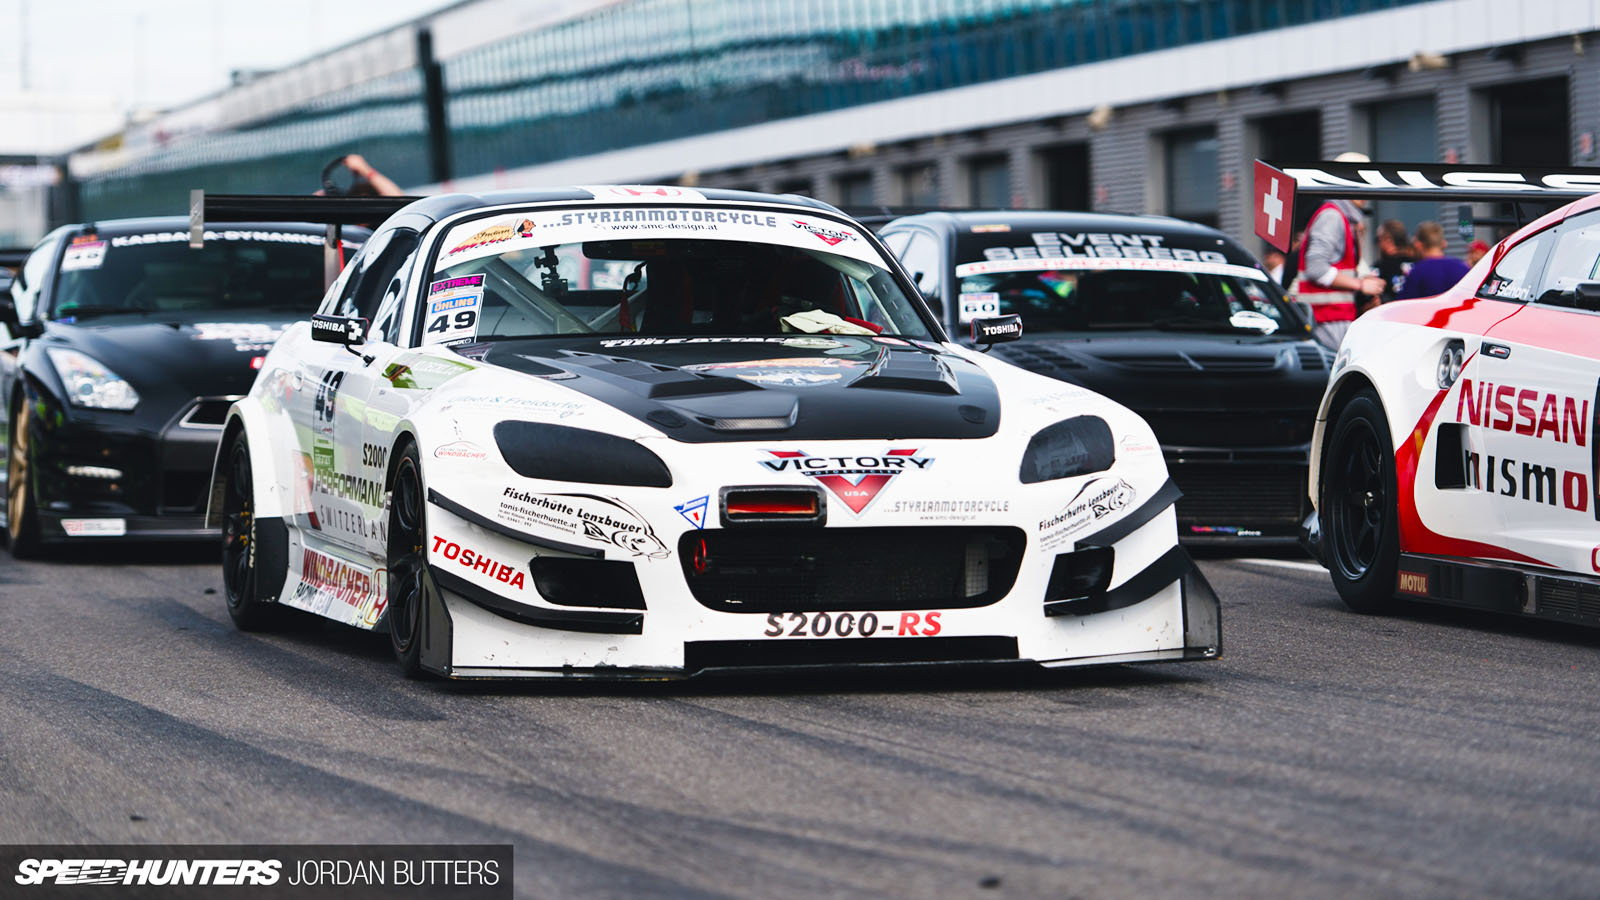 Time Attack S2000RS